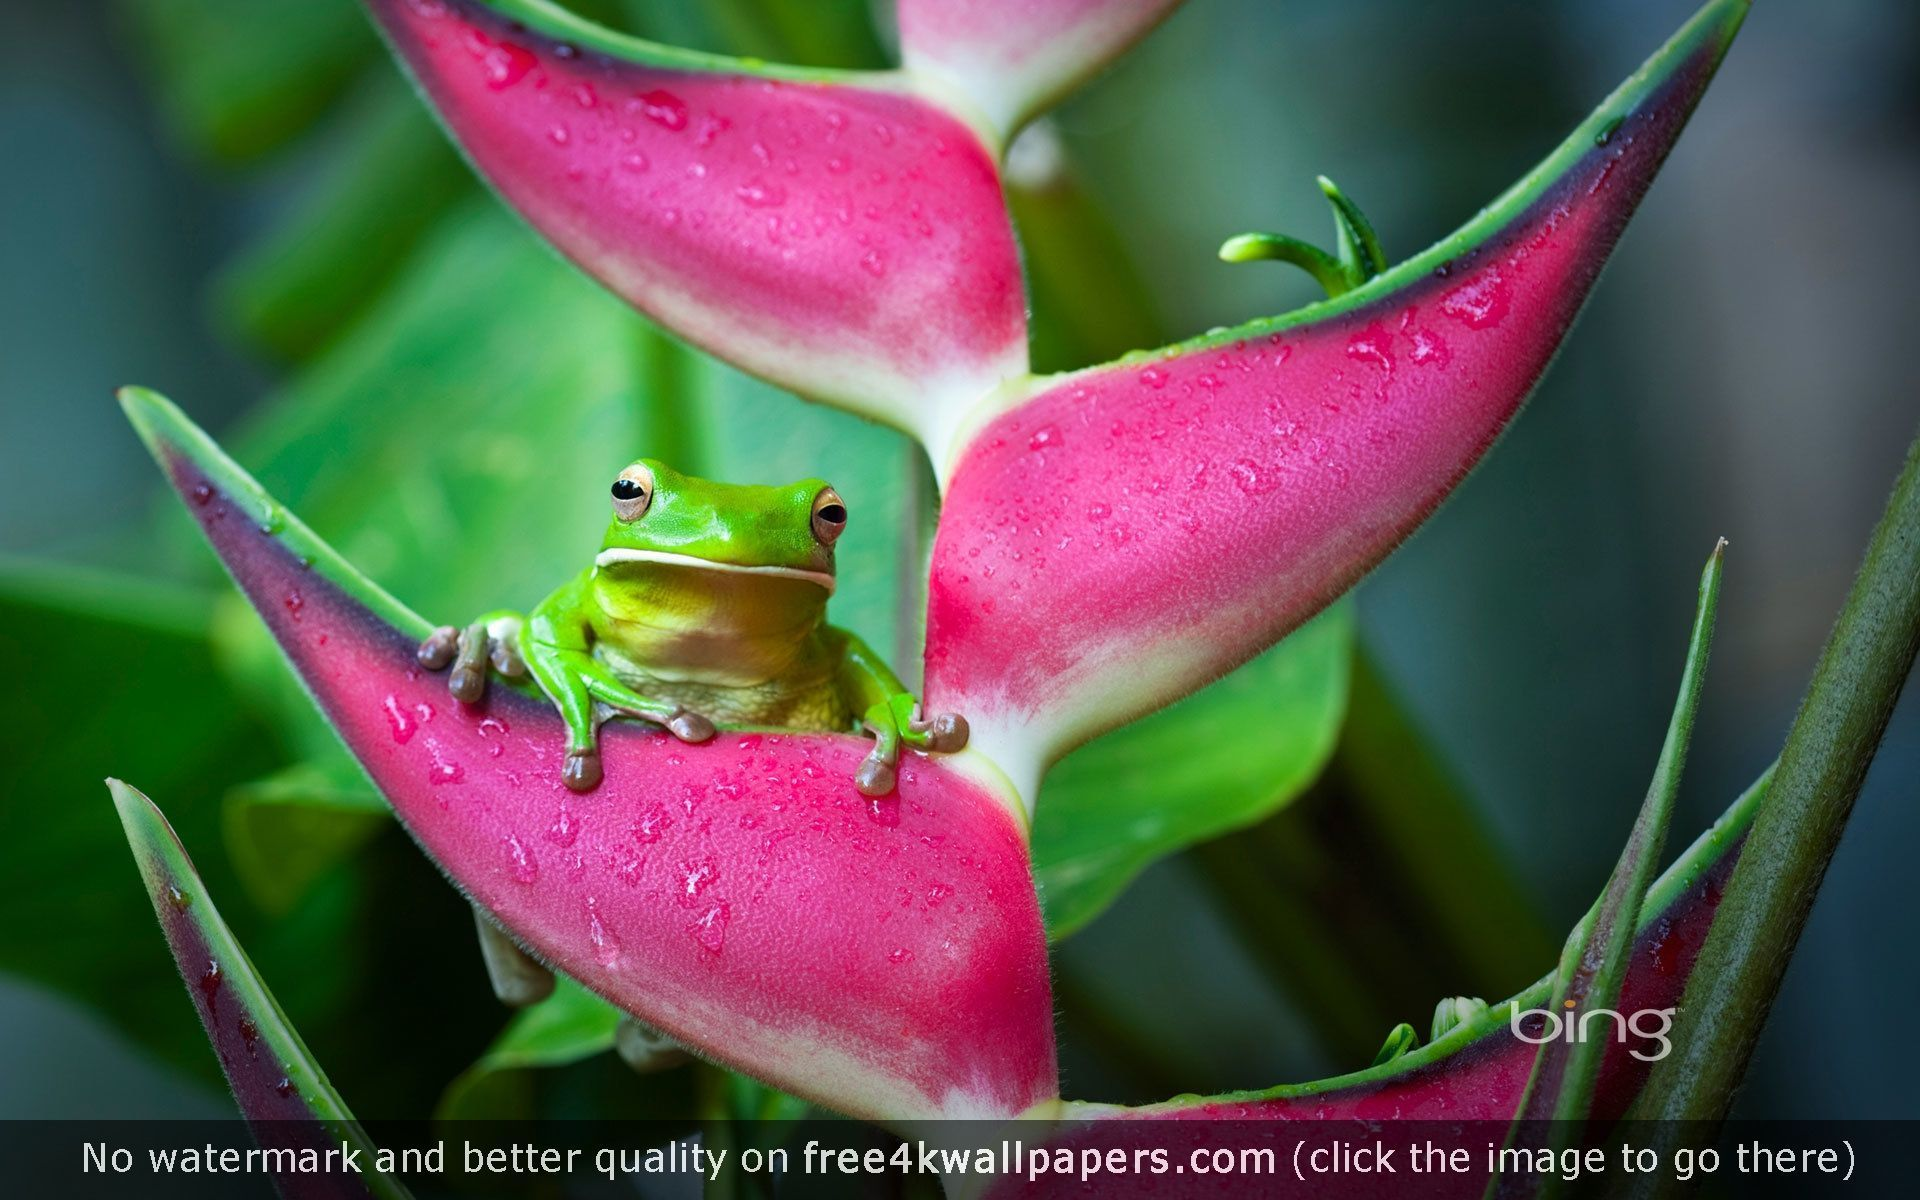 Frog 4k Wallpapers For Your Desktop Or Mobile Screen Free And Easy To Download Frog Pictures Animal Photo Frog Wallpaper